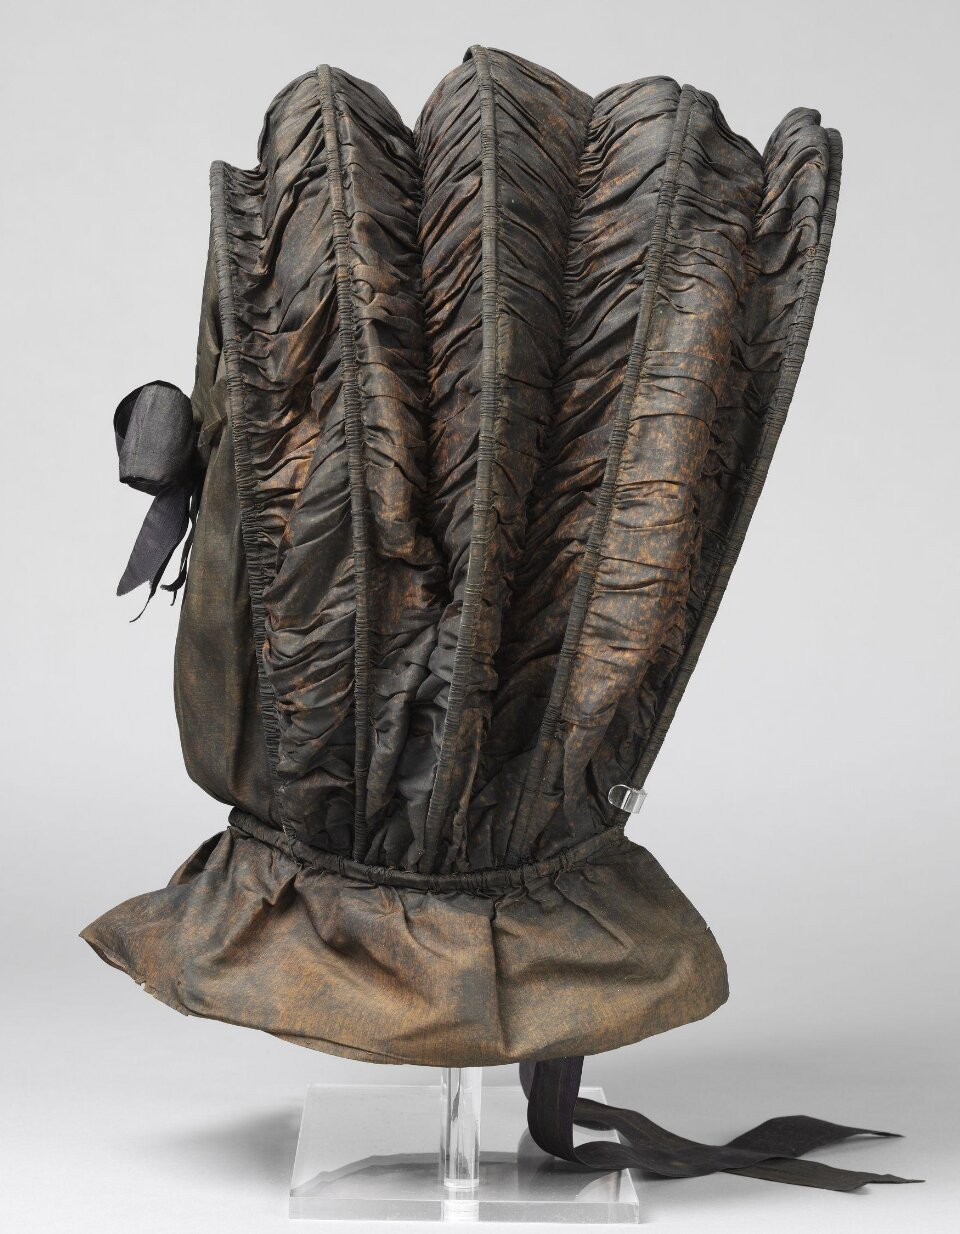 Calash, silk, canvas and cane, 1775–1800, Britain. Museum no. T.1045-1913. Given by Messrs Harrods Ltd. © Victoria and Albert Museum, London